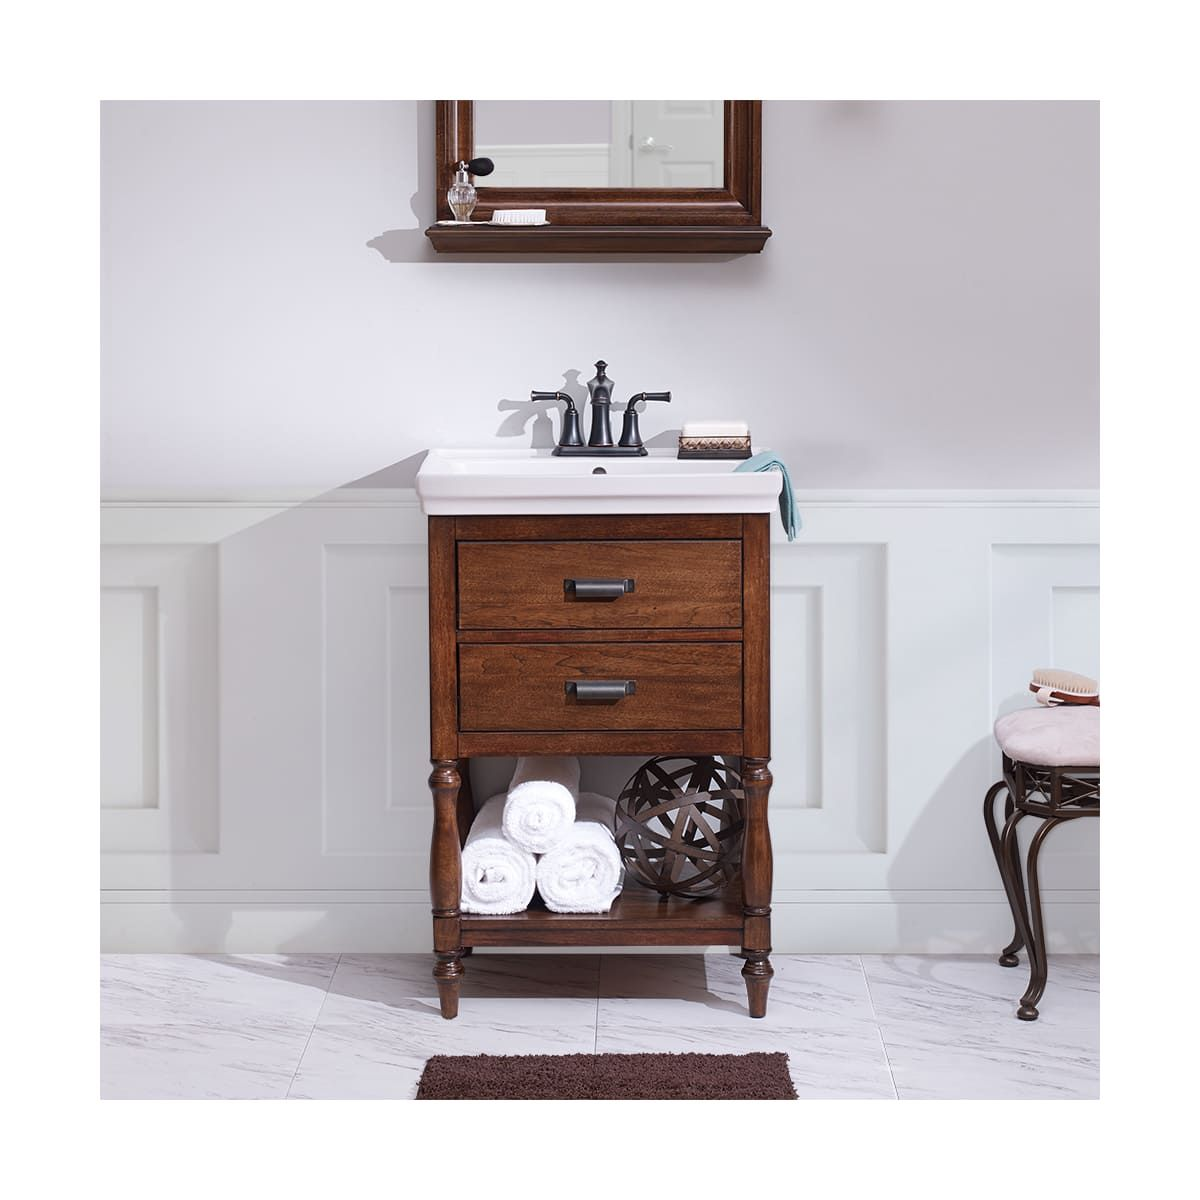 24 dark gray oak free standing modern bathroom cabinet with integrated sink. Foremost Chnvt2435 Cherie 23 5 8 Free Standing Build Com In 2021 Small Bathroom Vanities Bathroom Vanity Bathroom Vanity Store